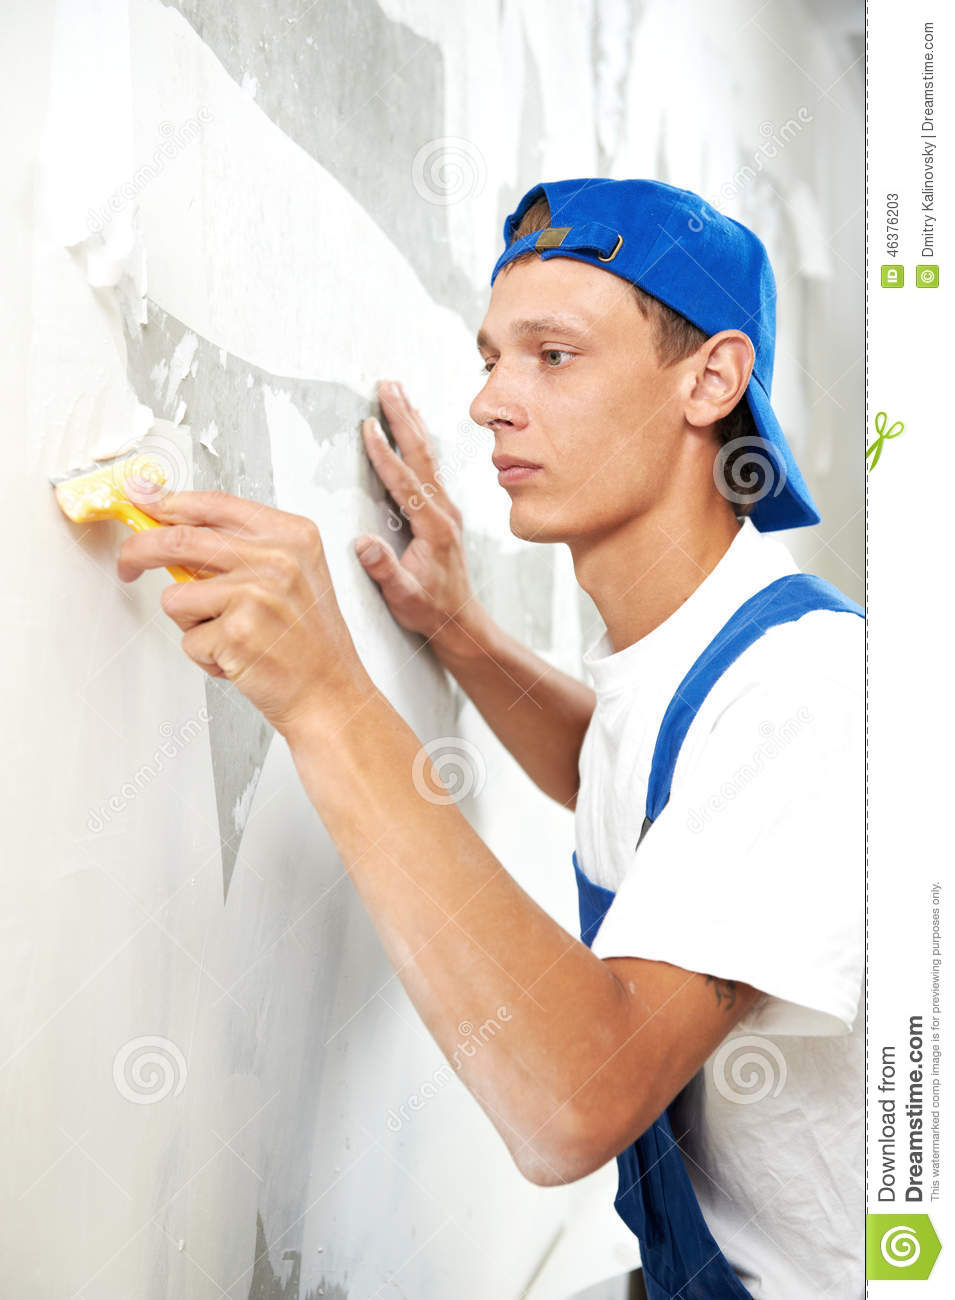 Painter worker peeling off wallpaper stock image image for Wallpaper home renovation